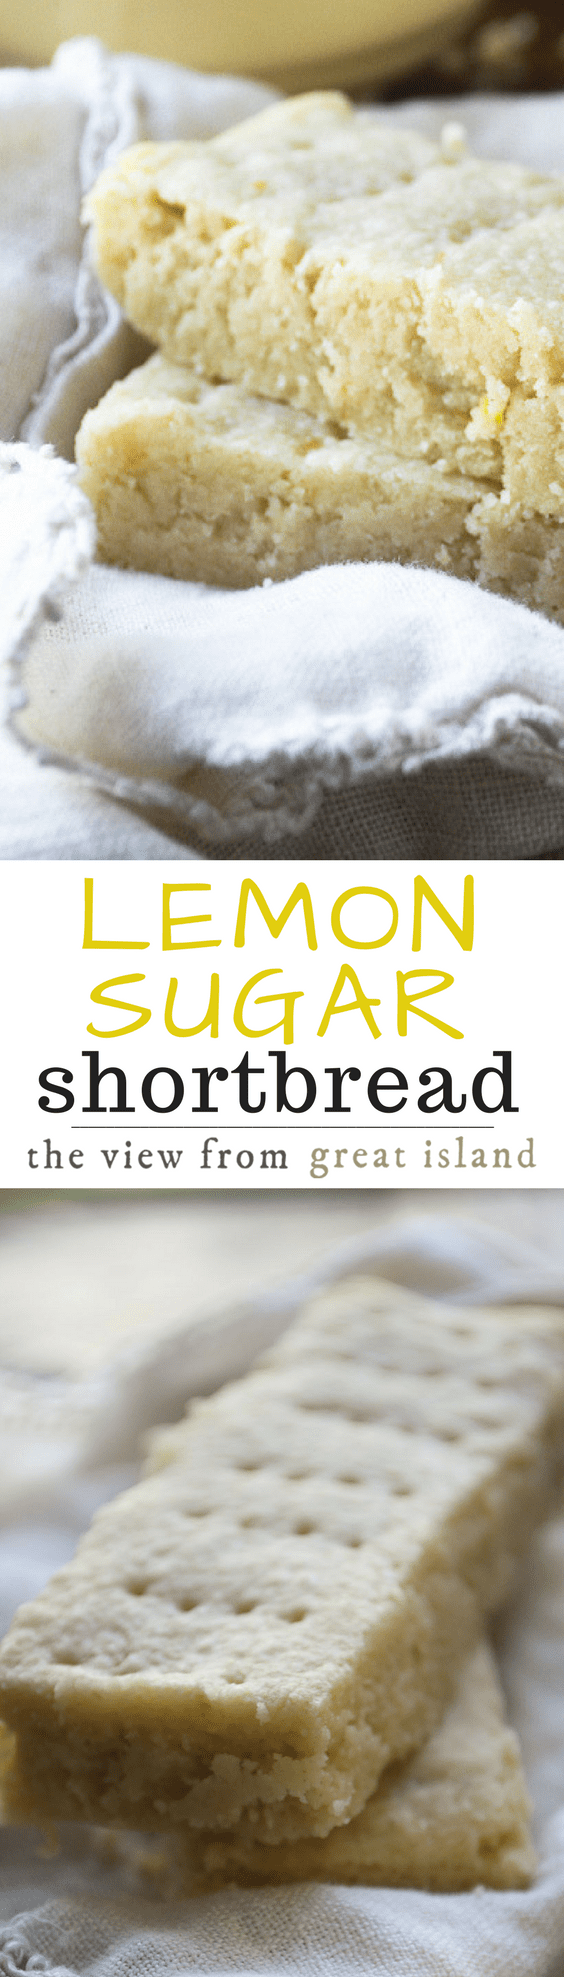 This unusual Scottish Lemon Sugar Shortbread is made with a fabulous sugar infused with lemon rind